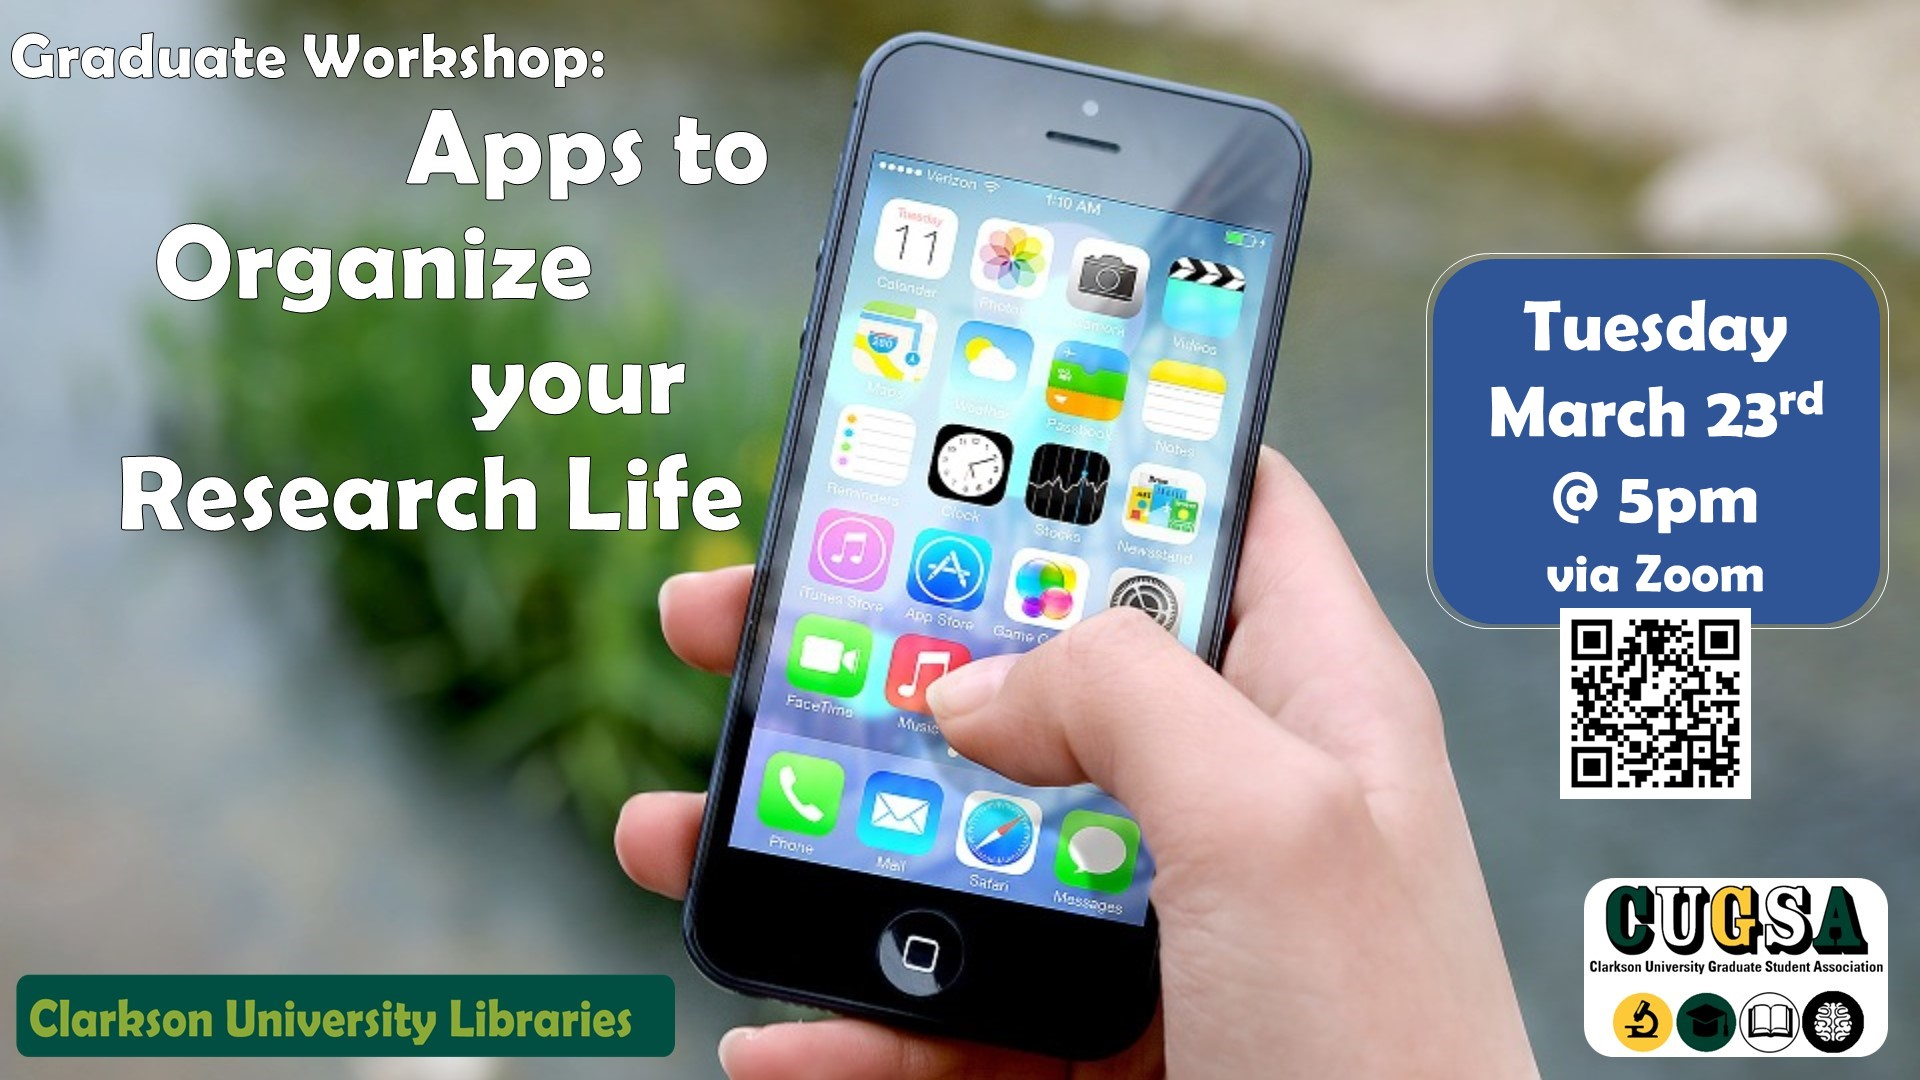 Graduate Workshop: Apps to Organize your Research Life